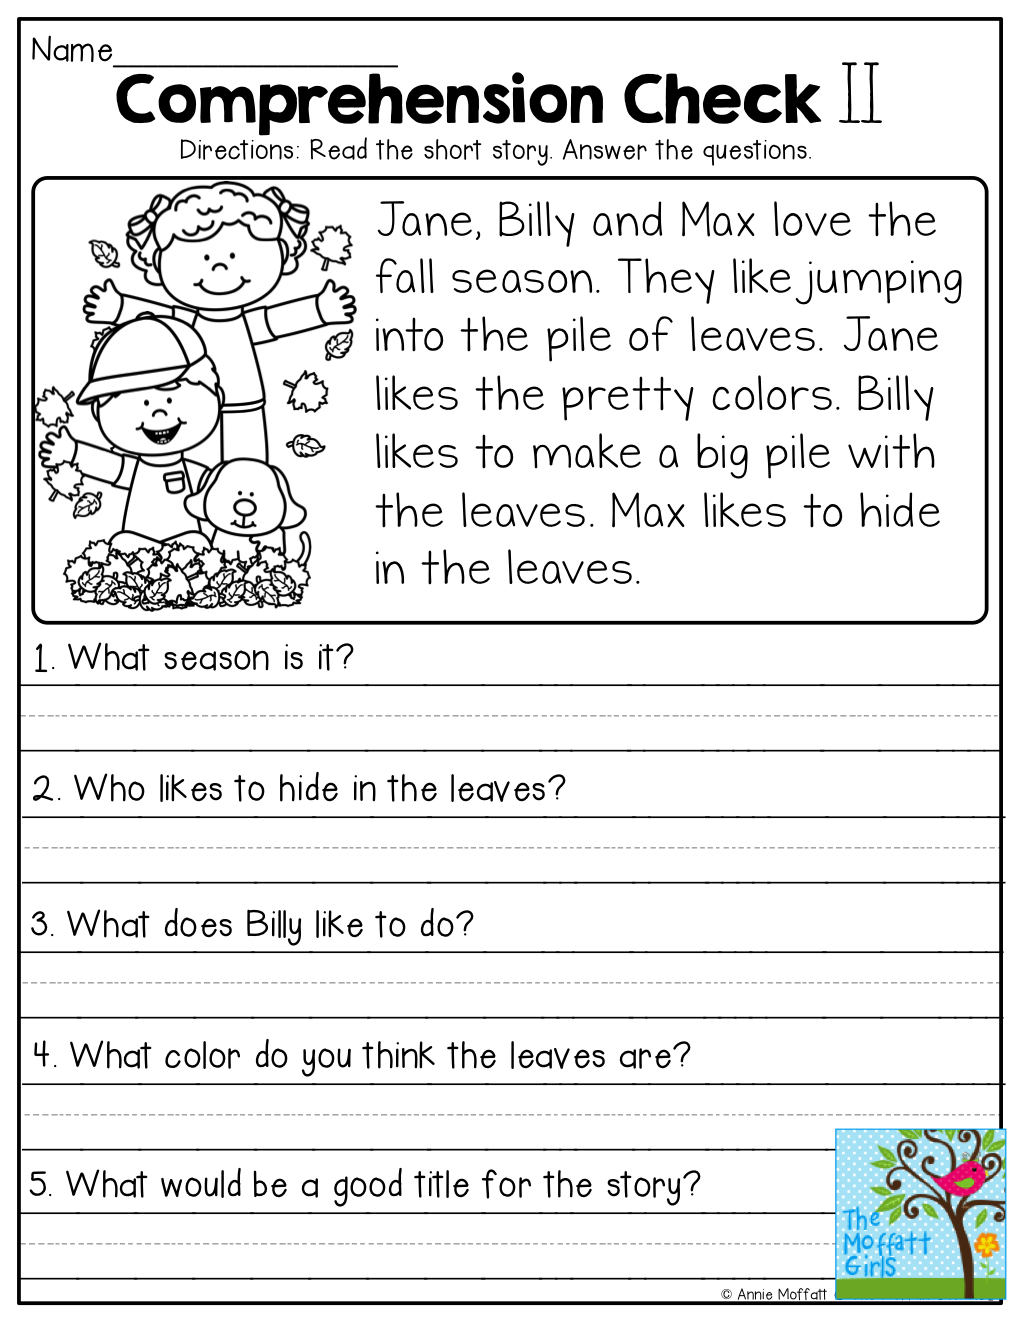 Comprehension Checks And So Many More Useful Printables! | Reading - Free Printable Short Stories With Comprehension Questions